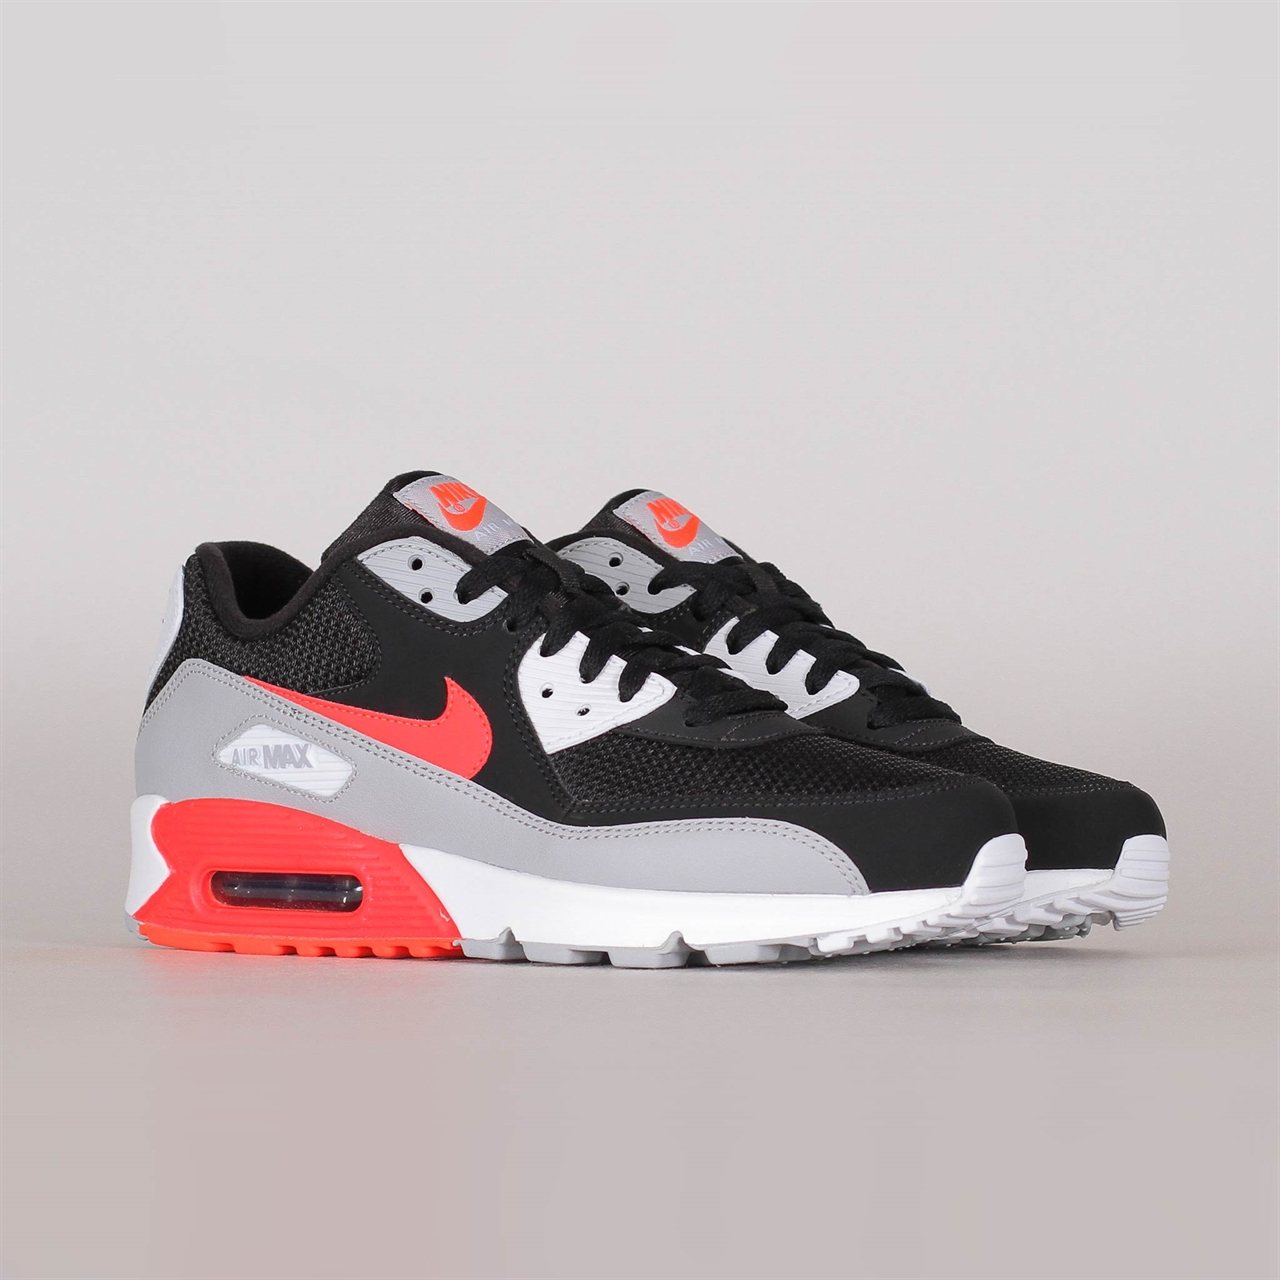 fda0c5f44c7 Shelta - Nike Air Max 90 Essential (AJ1285-012)